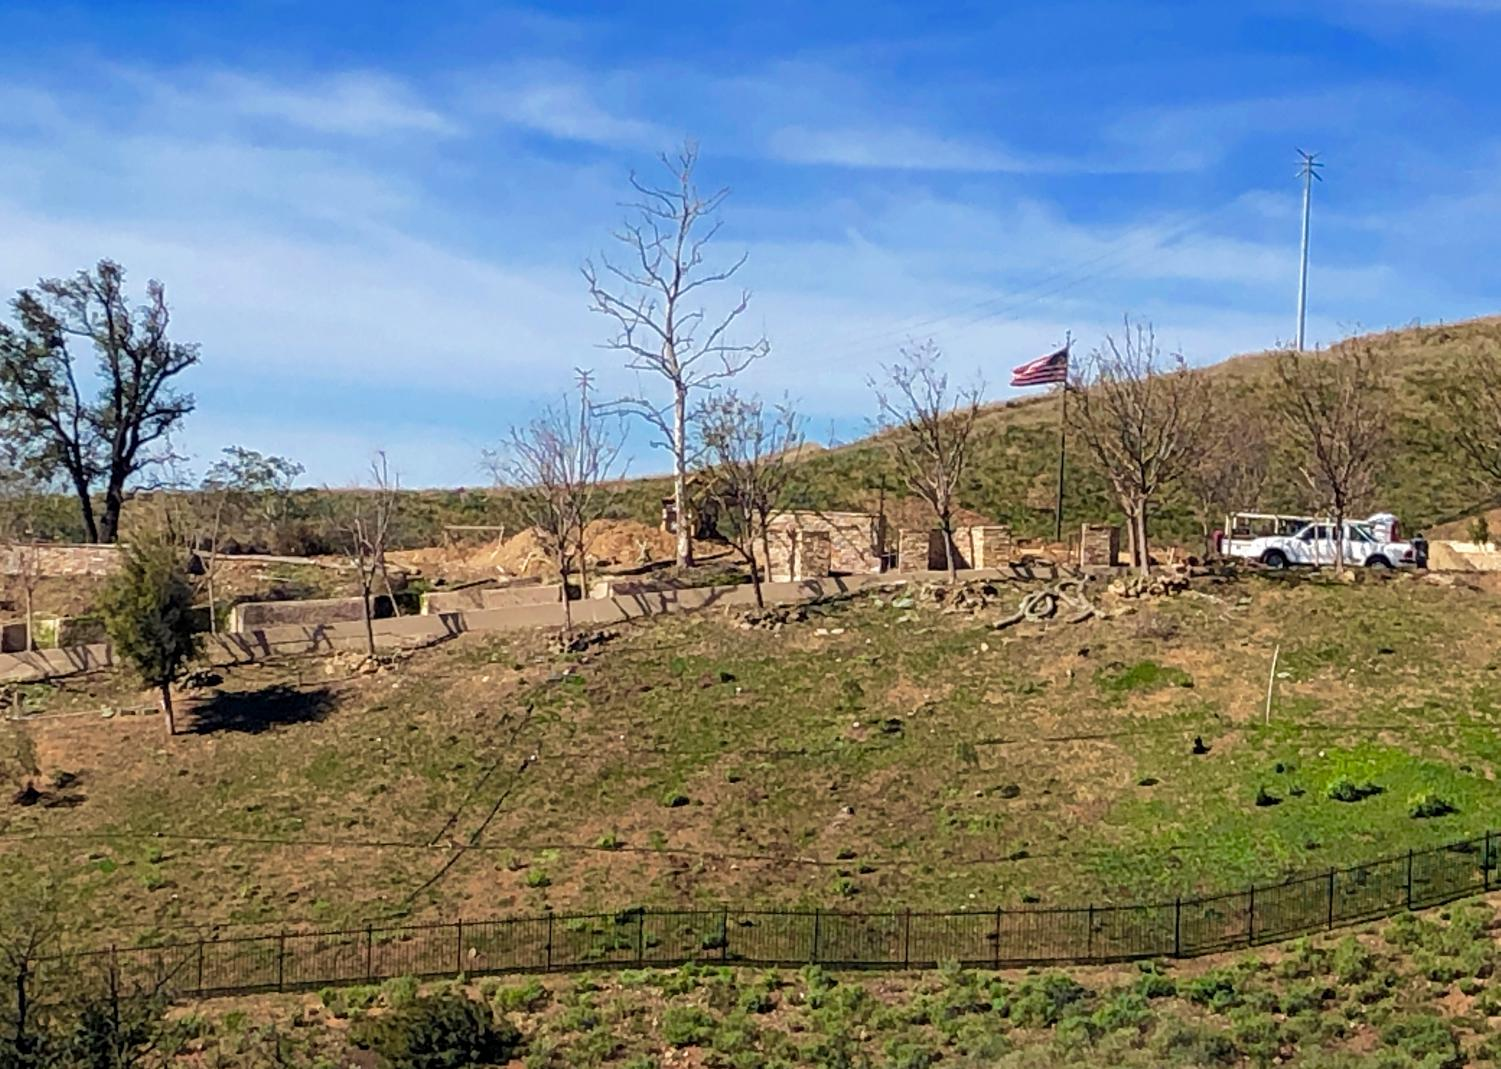 Rising from the ashes: The North Ranch community begins rebuilding process after the Woolsey Fire.